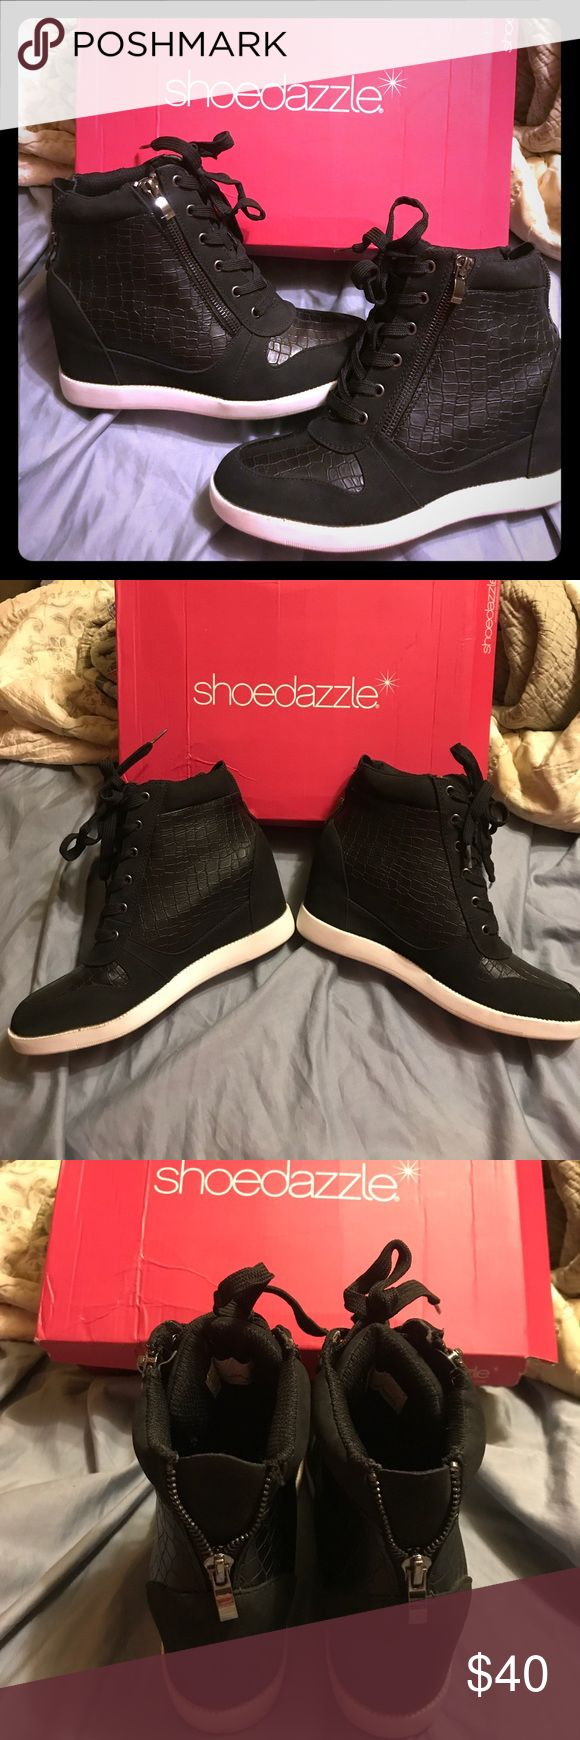 Show dazzle hidden wedge sneakers, size 7.5, new Show dazzle sneakers black snake like patterns has zip up sides and laces in front, very nice new but worn once, is recommend them for a size 7 instead of 7.5 as they were a little tight for me which is why I only wore them once,no flaws, bottom of souls a little dirty from wearing them once, box was damaged when delivered to me🚬🐱🏡💖accepting reasonable offers💖 Shoe Dazzle Shoes Sneakers